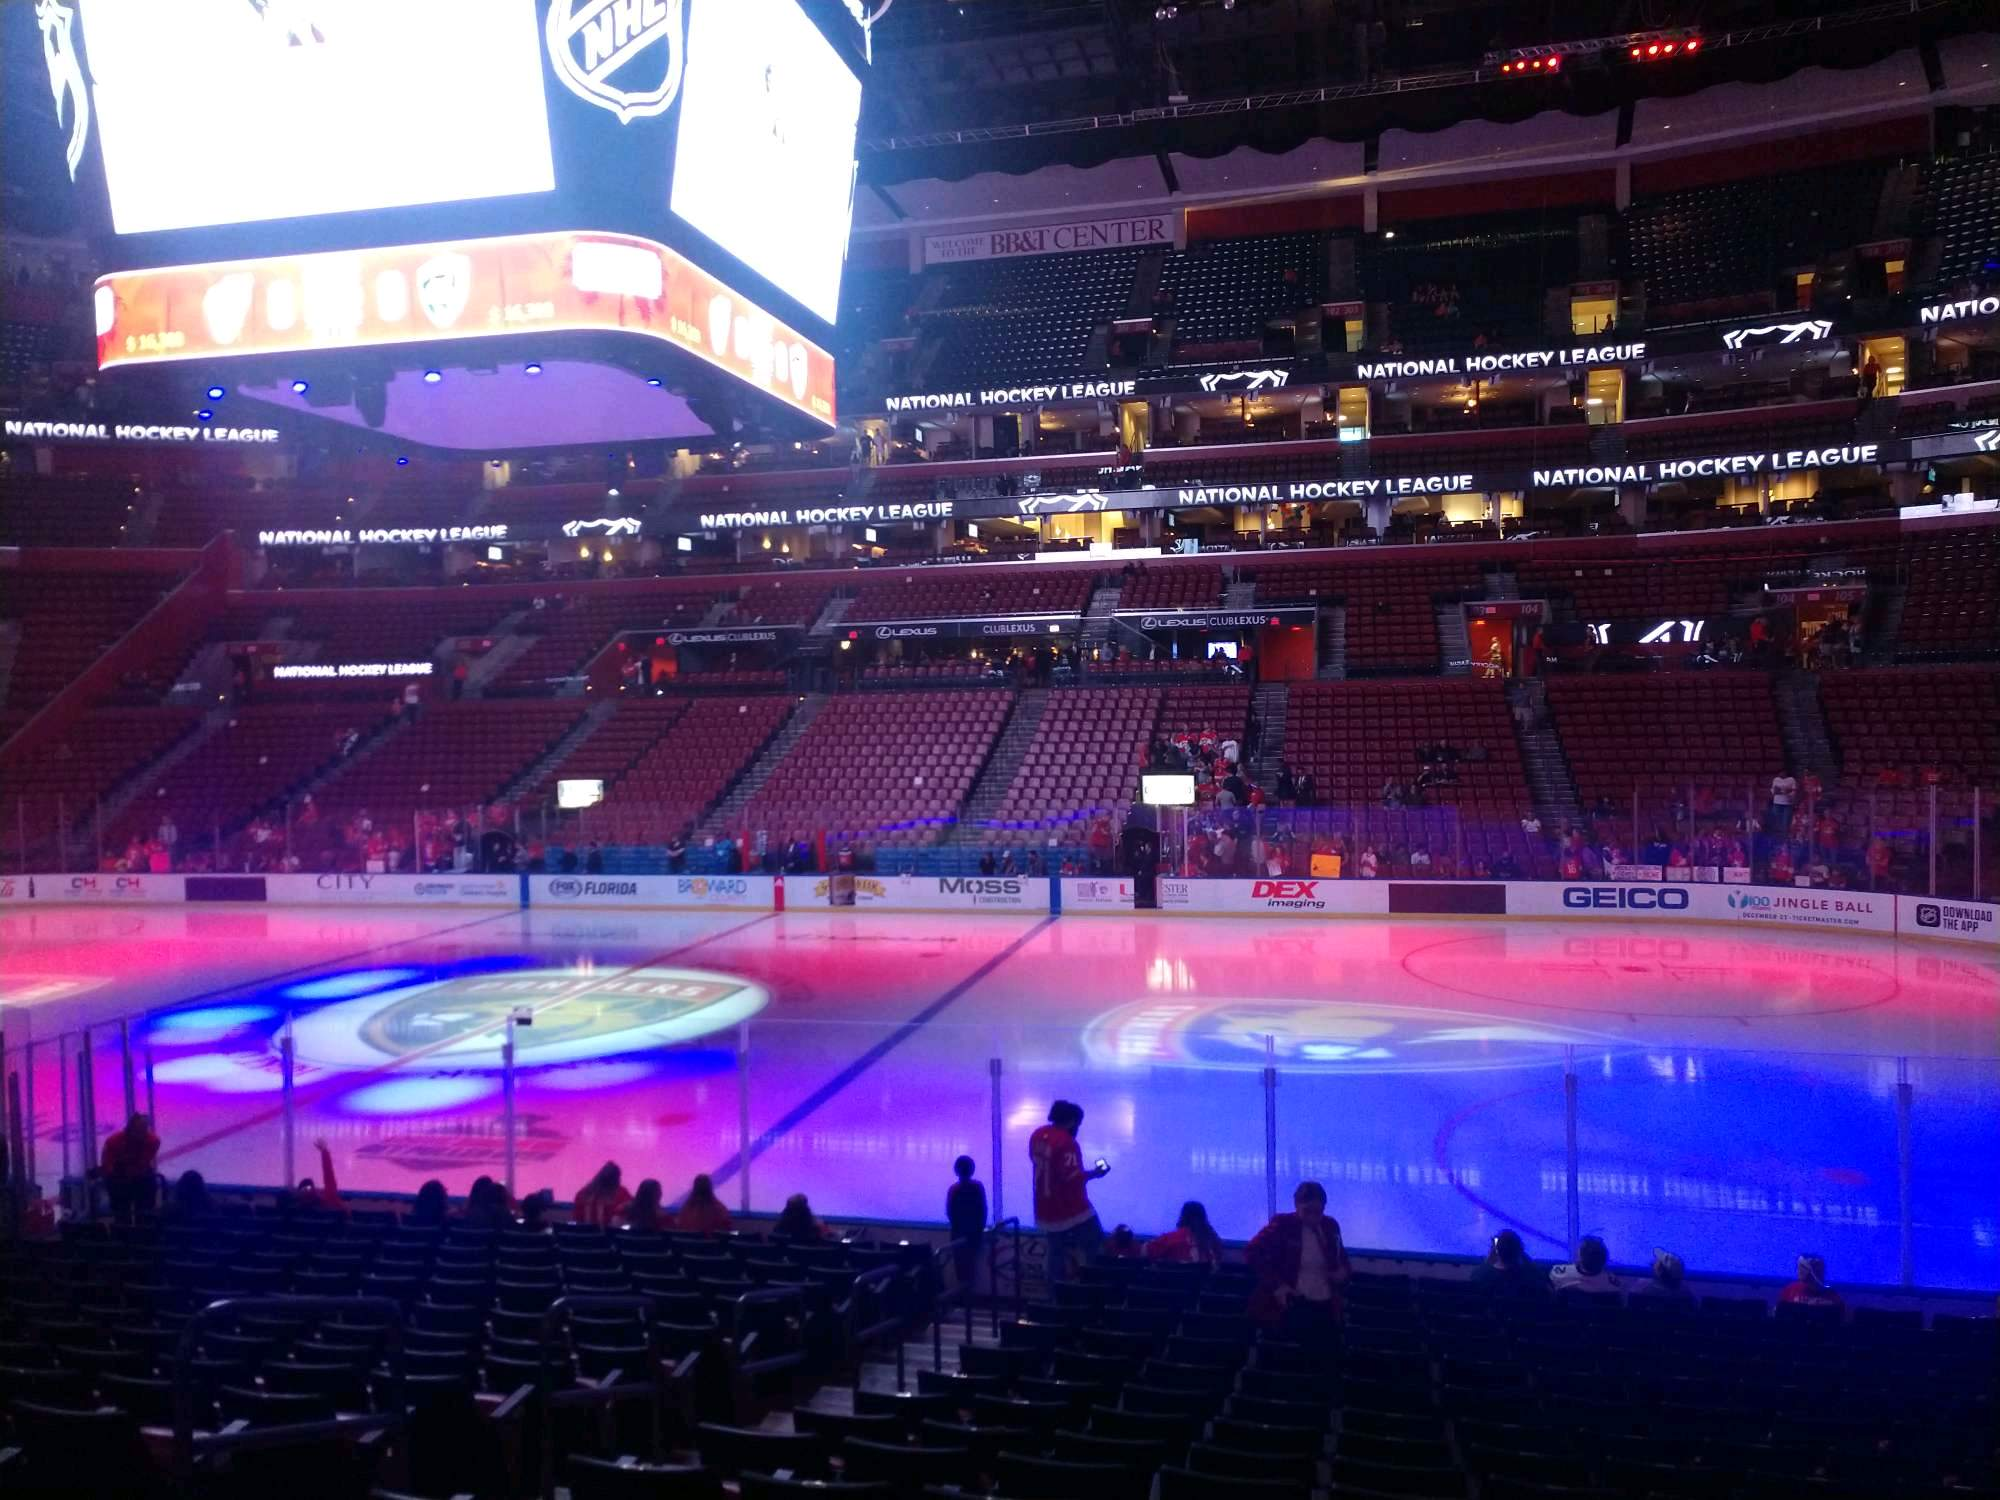 BB&T Center Section 116 Row 16 Seat 10